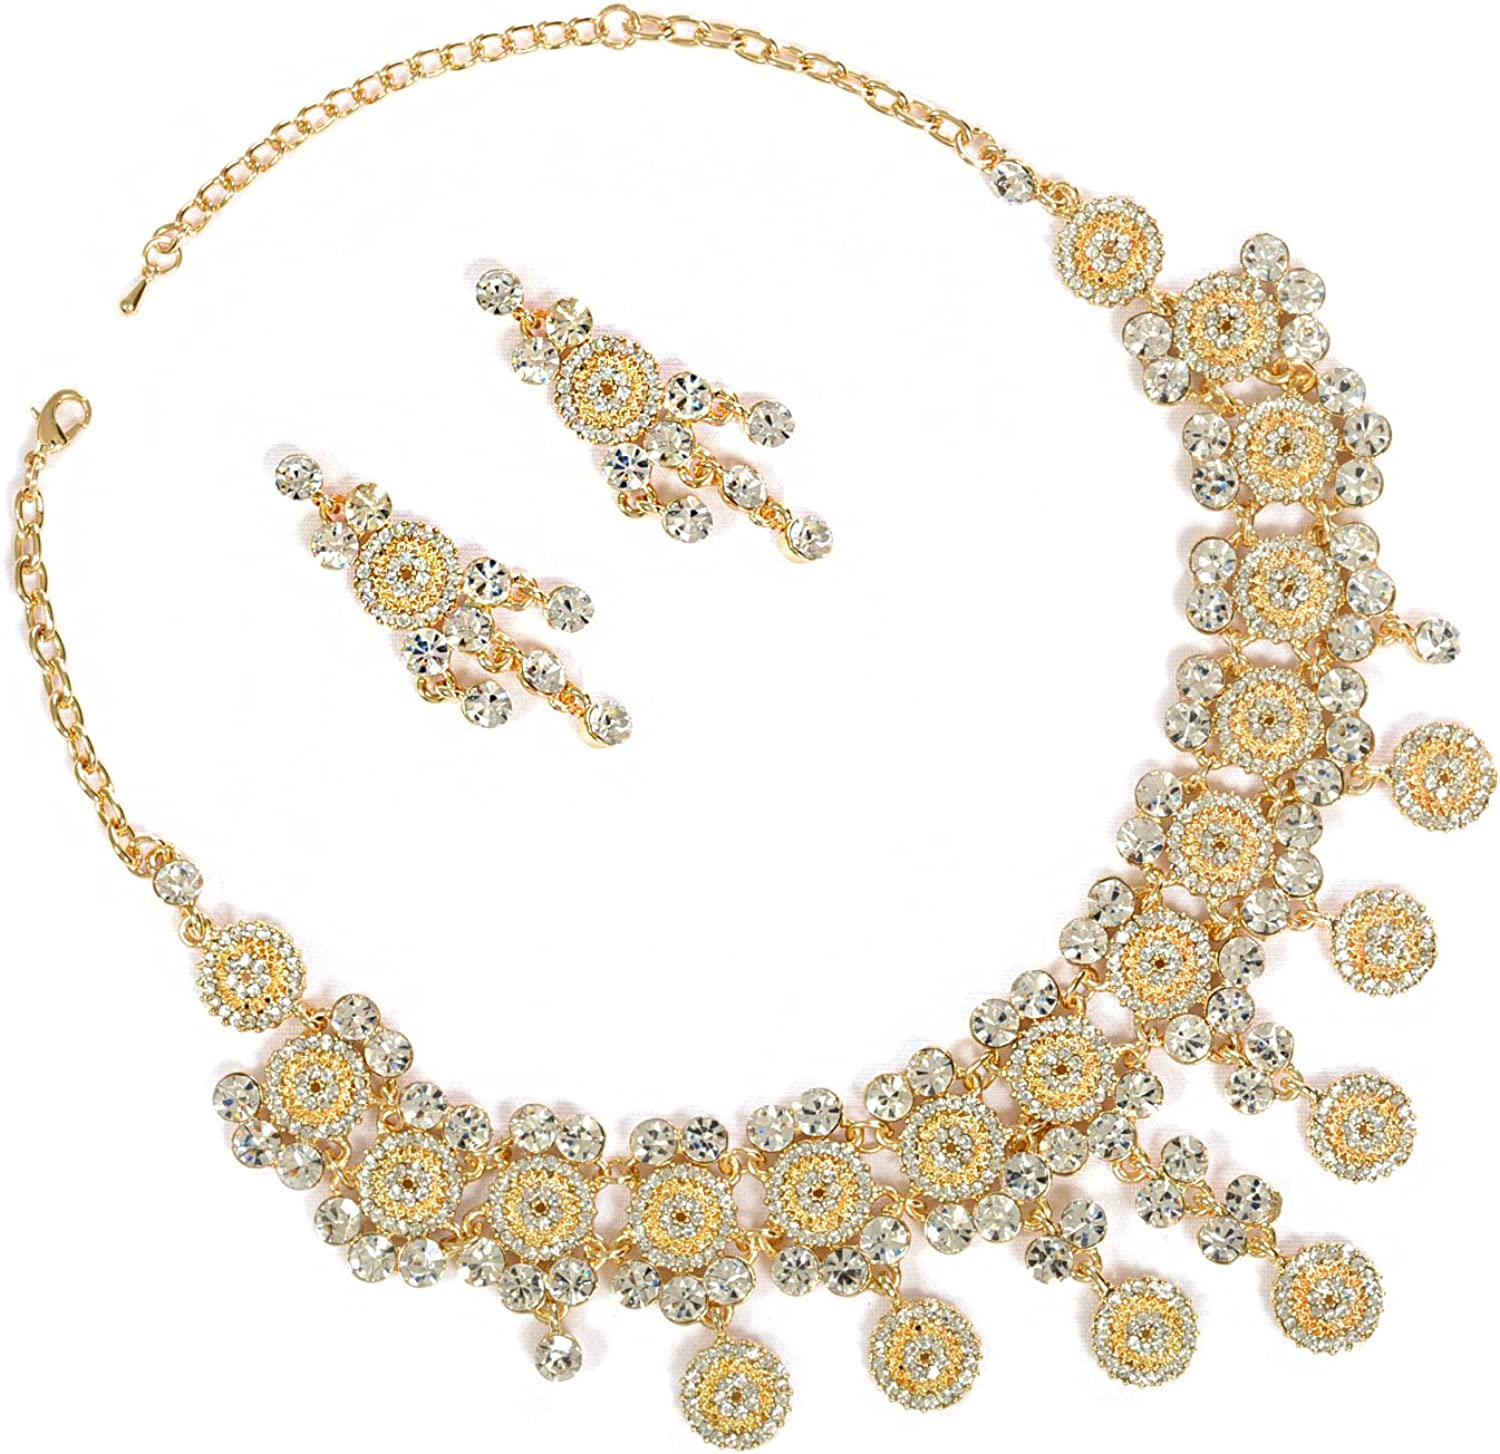 Topwholesalejewel Gold Crystal Rhinestone Circle Shape and Crystal Stones Necklace with Matching Earrings Jewelry Set